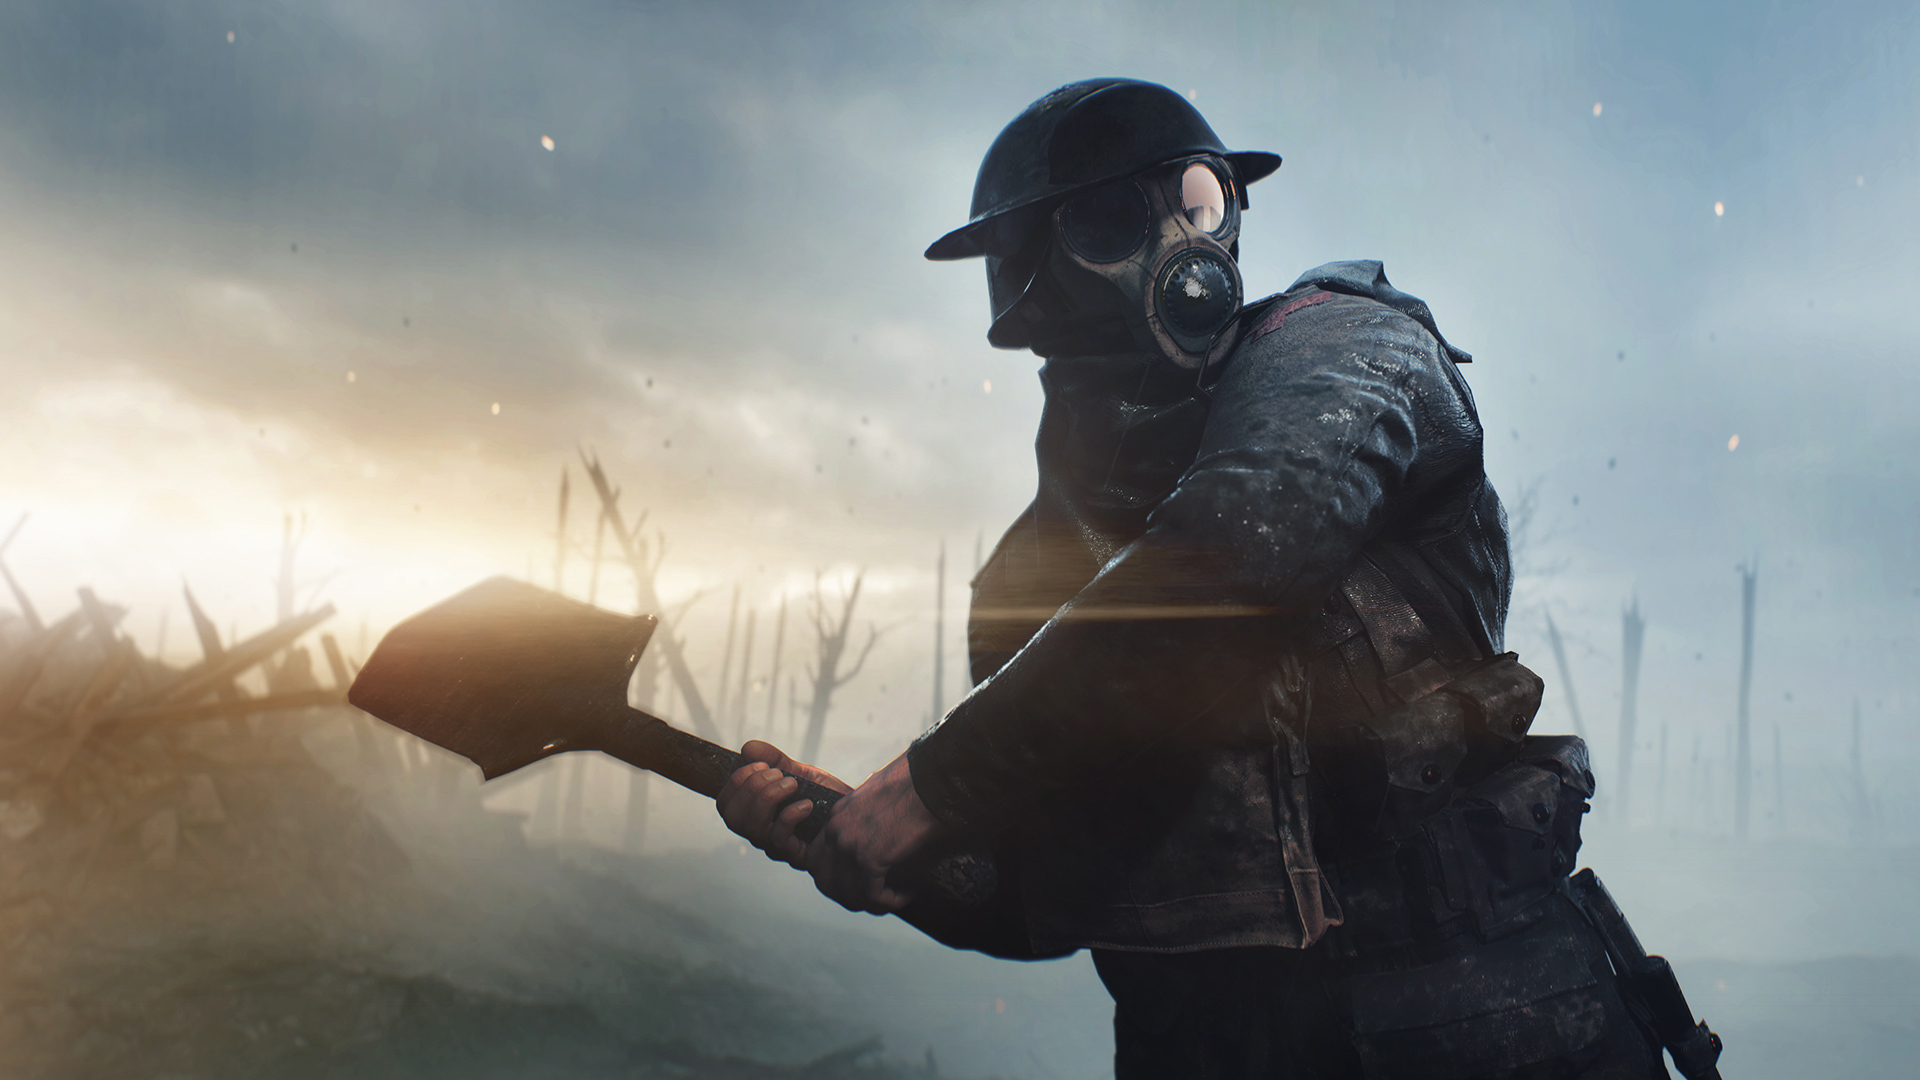 Battlefield 1 from EA and DICE